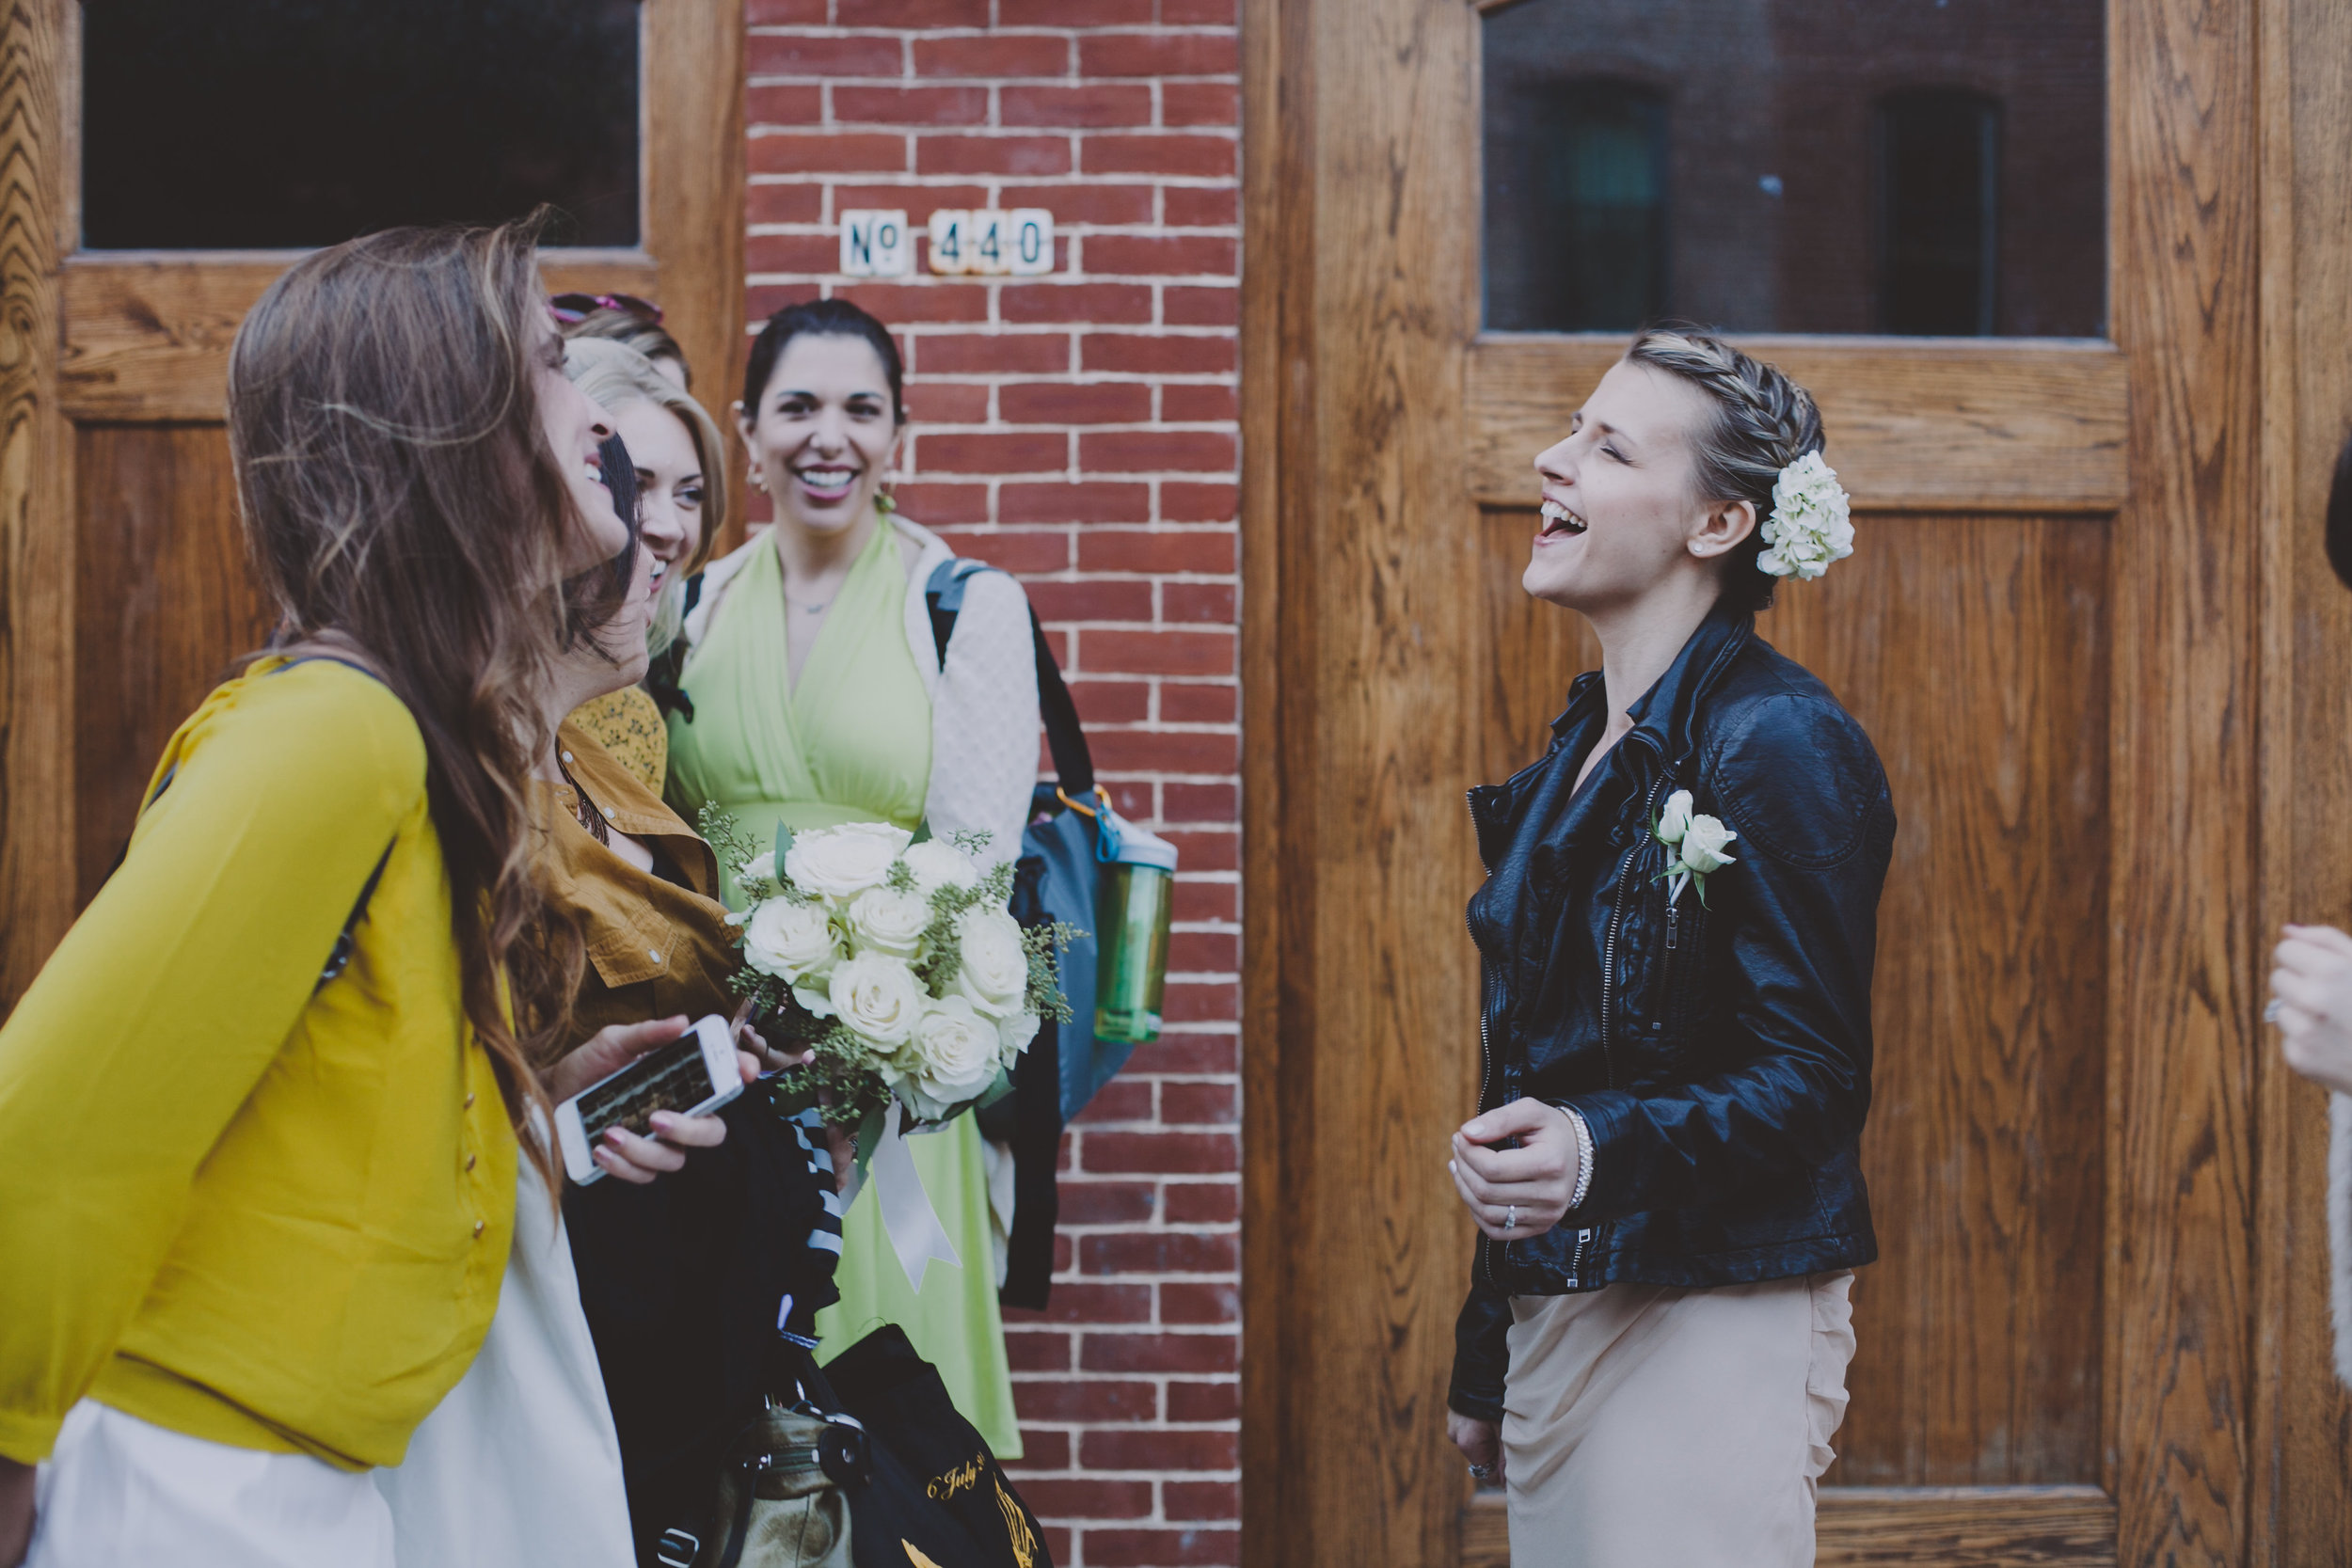 THE GREEN BUILDING LESBIAN GAY WEDDING CHELLISE MIKE BROOKLYN PHOTOGRAPHER